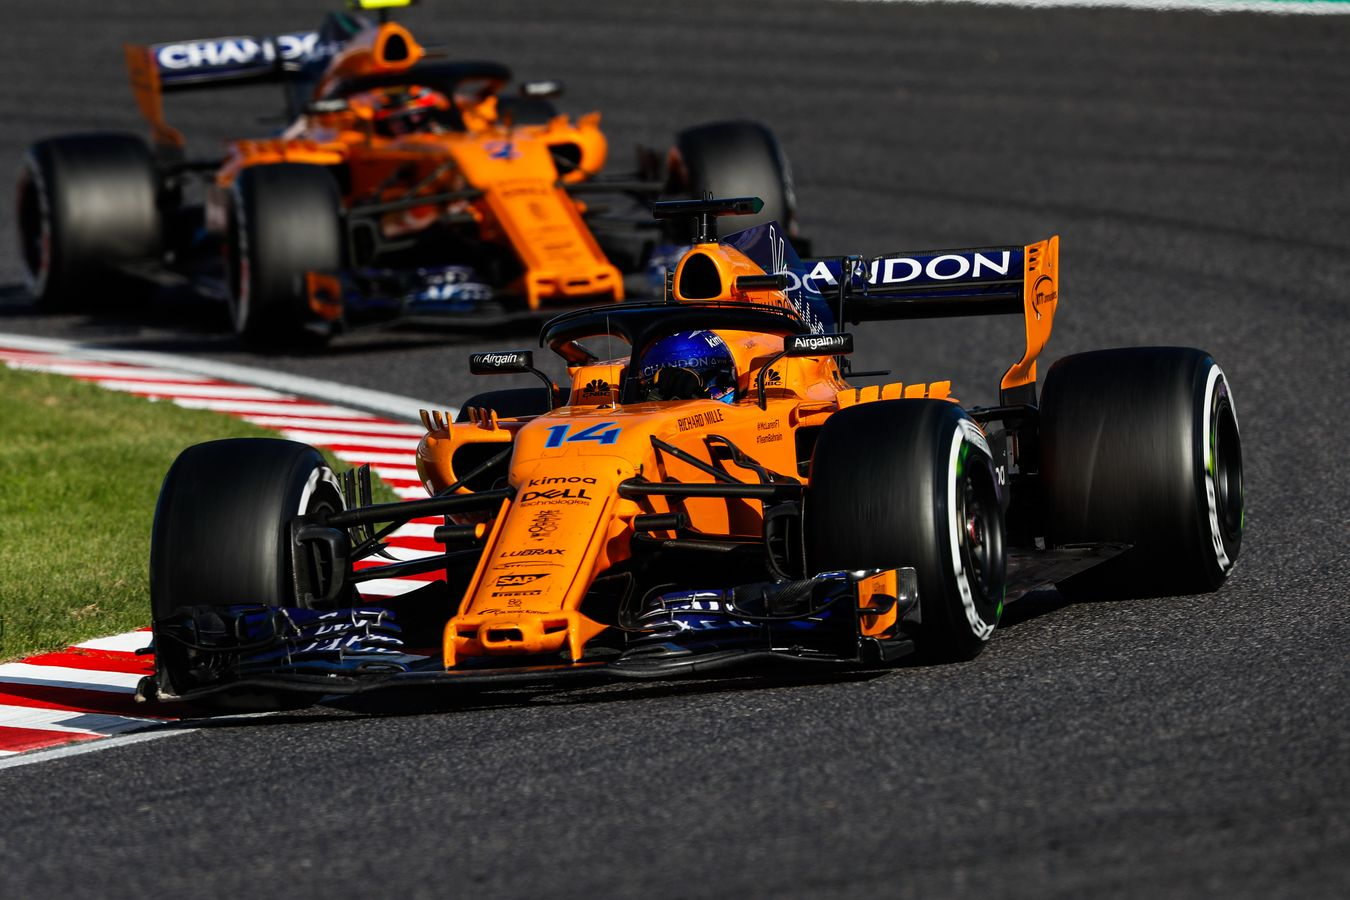 McLaren Racing - 2018 Japanese Grand Prix